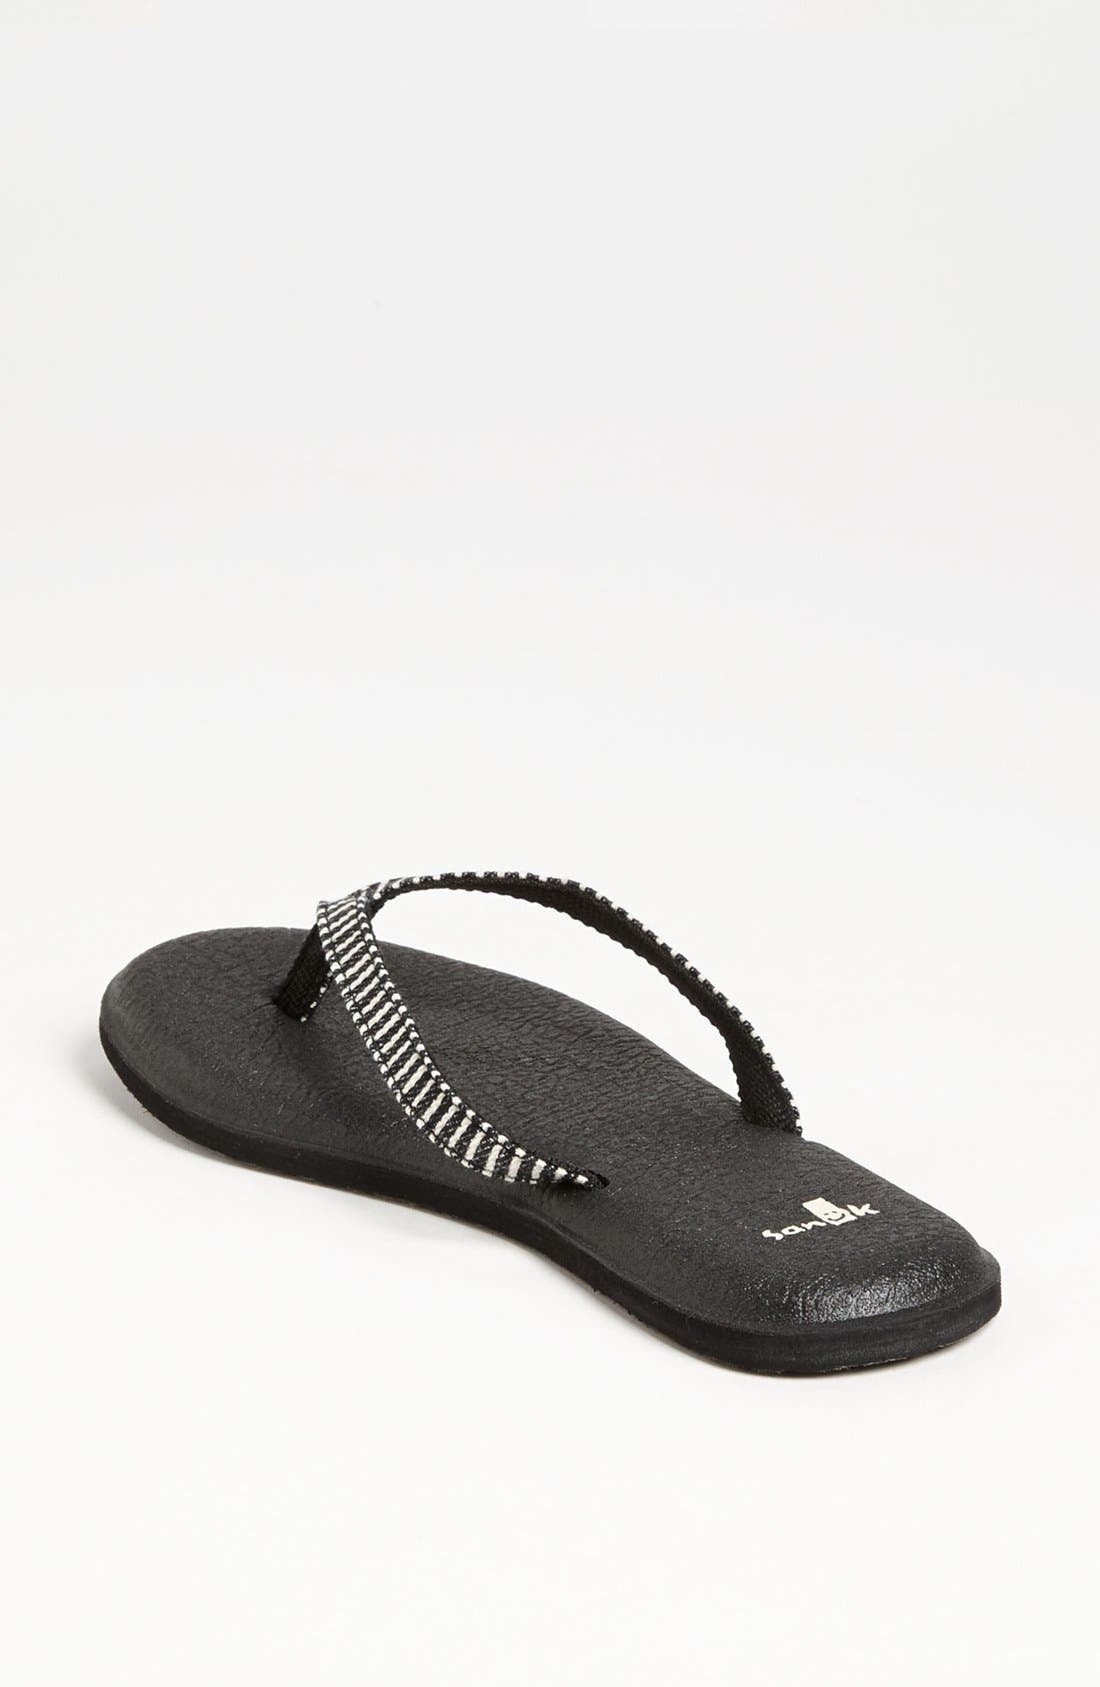 Alternate Image 2  - Sanuk 'Yoga Spree Funk' Flip Flop (Women)